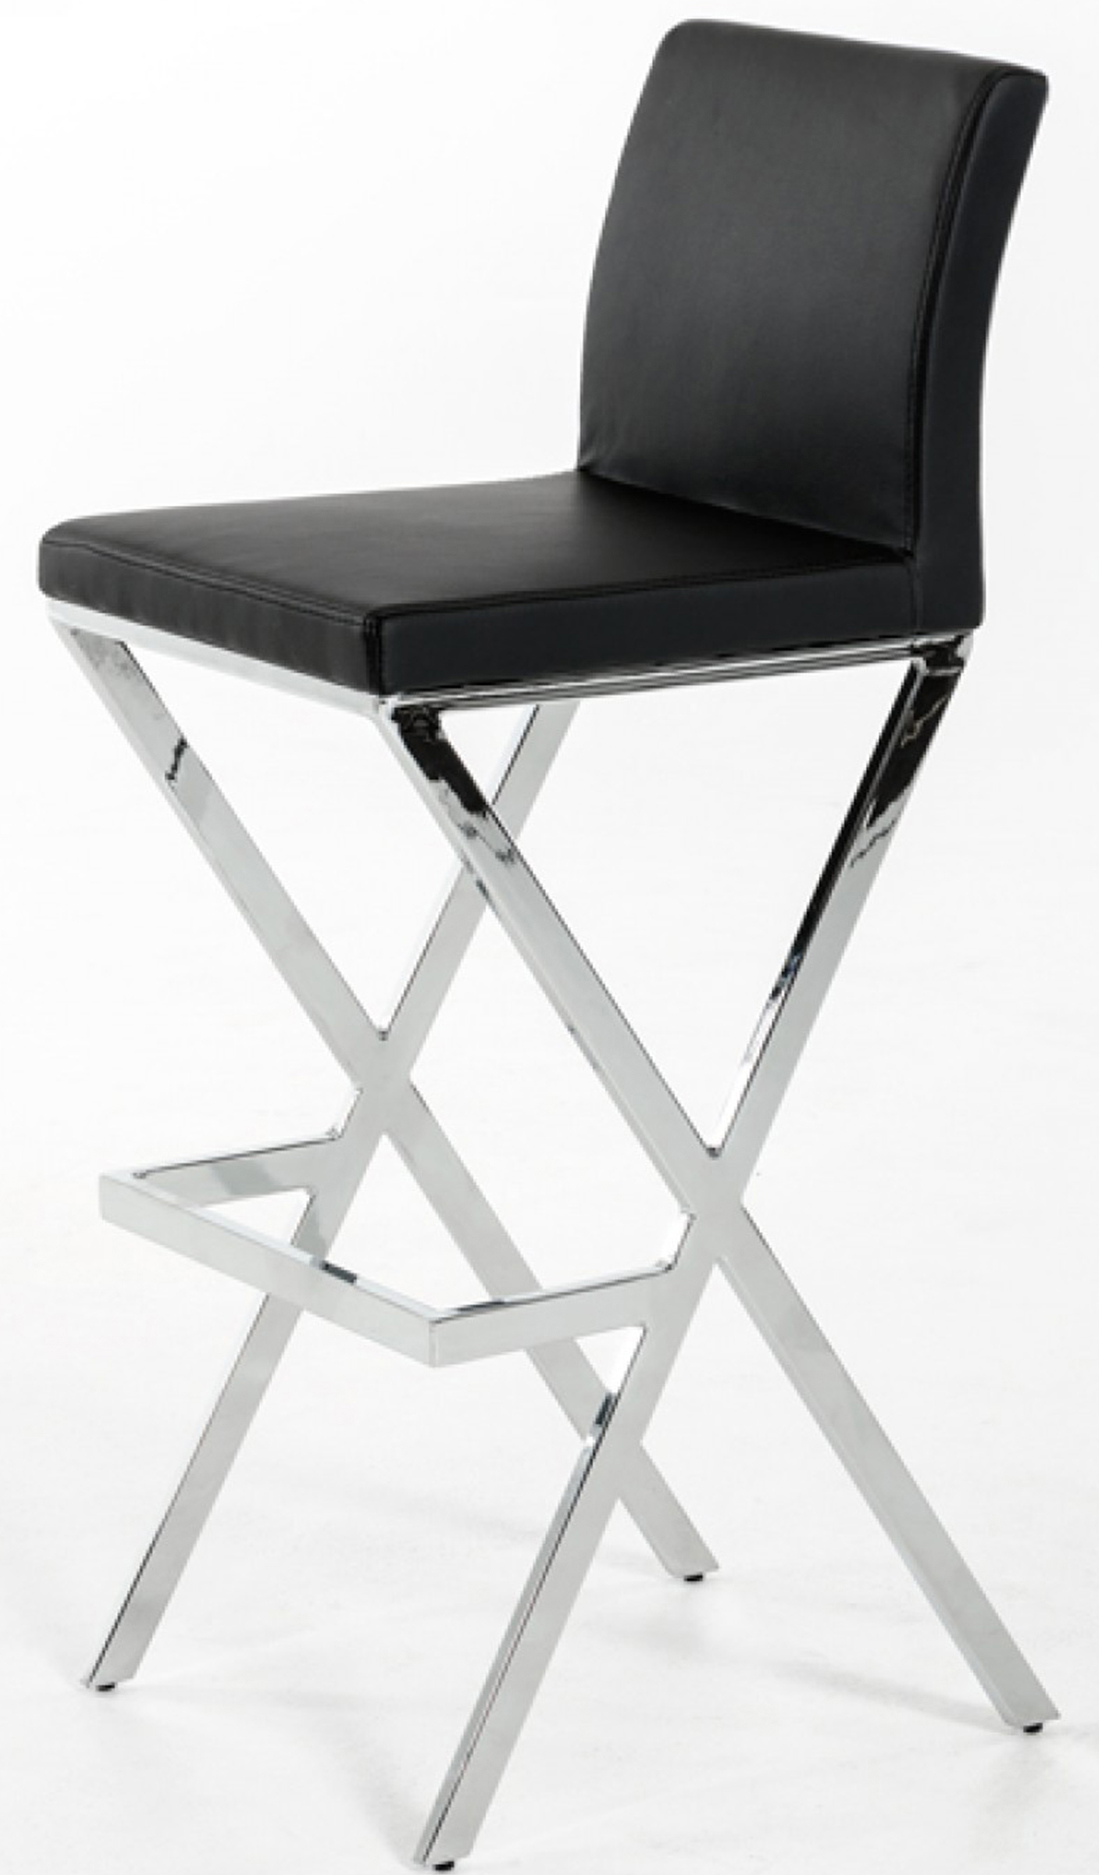 we've got a brand new modern bar stool great for any dining area